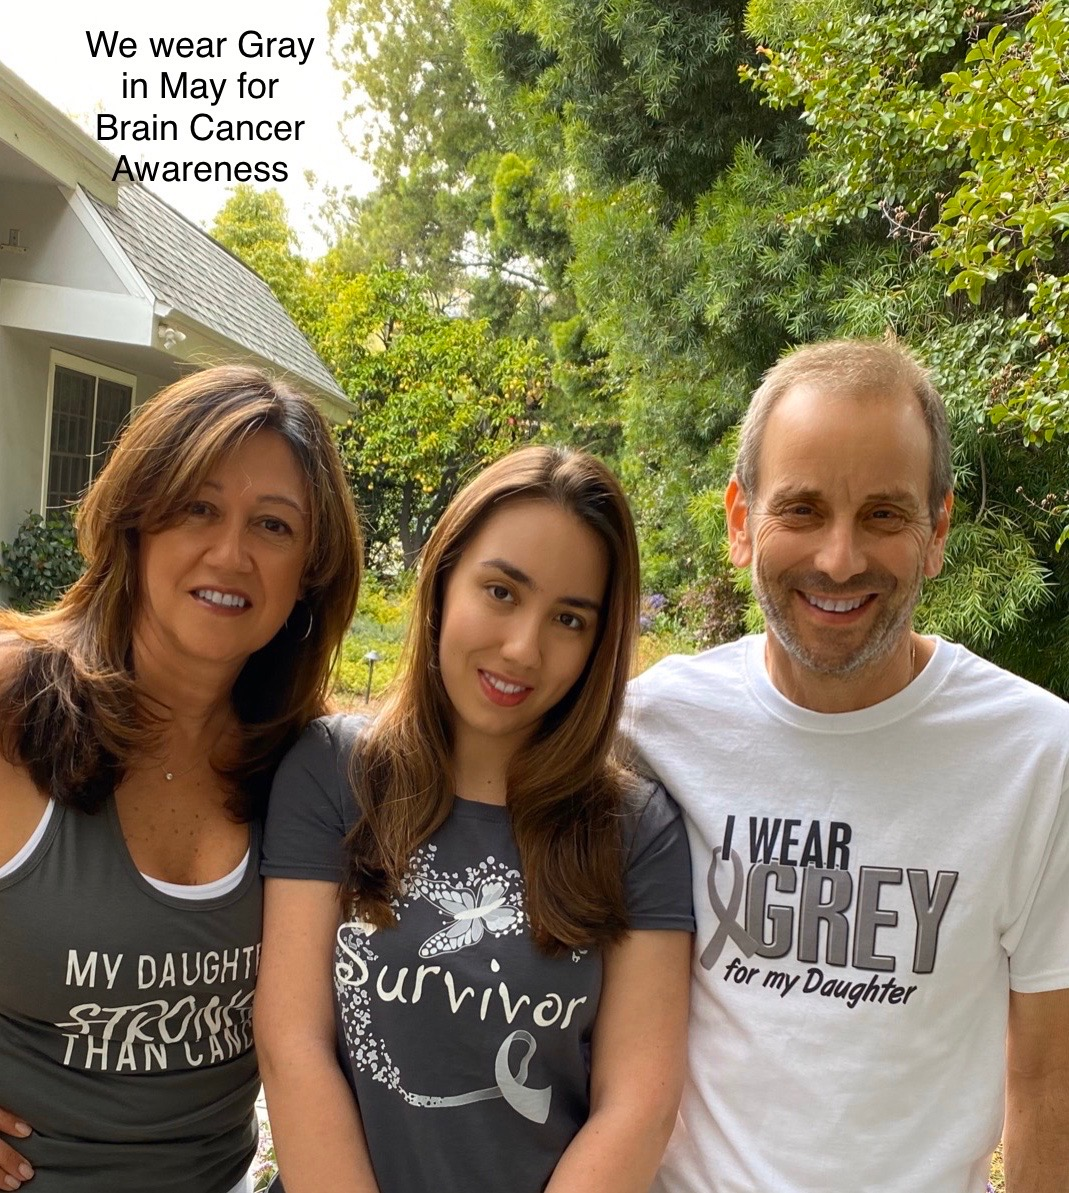 Going Gray in May for Brain Cancer Awareness